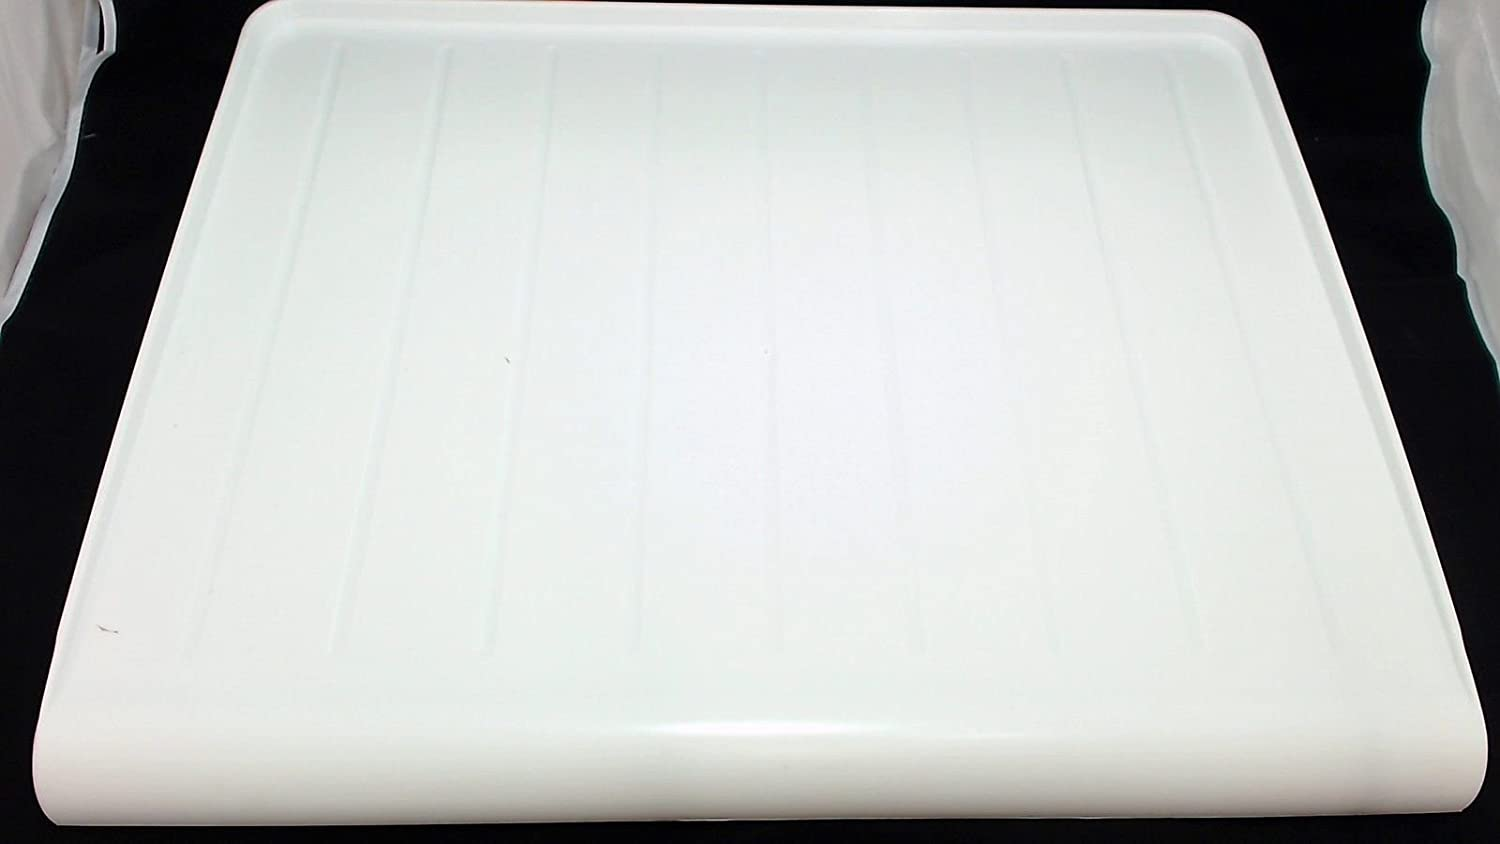 "Supco Crisper Cover Replacement Tray 24-1/2"" x 18-5/8"" for GE, Part No. CS10398 (1-Pack)"